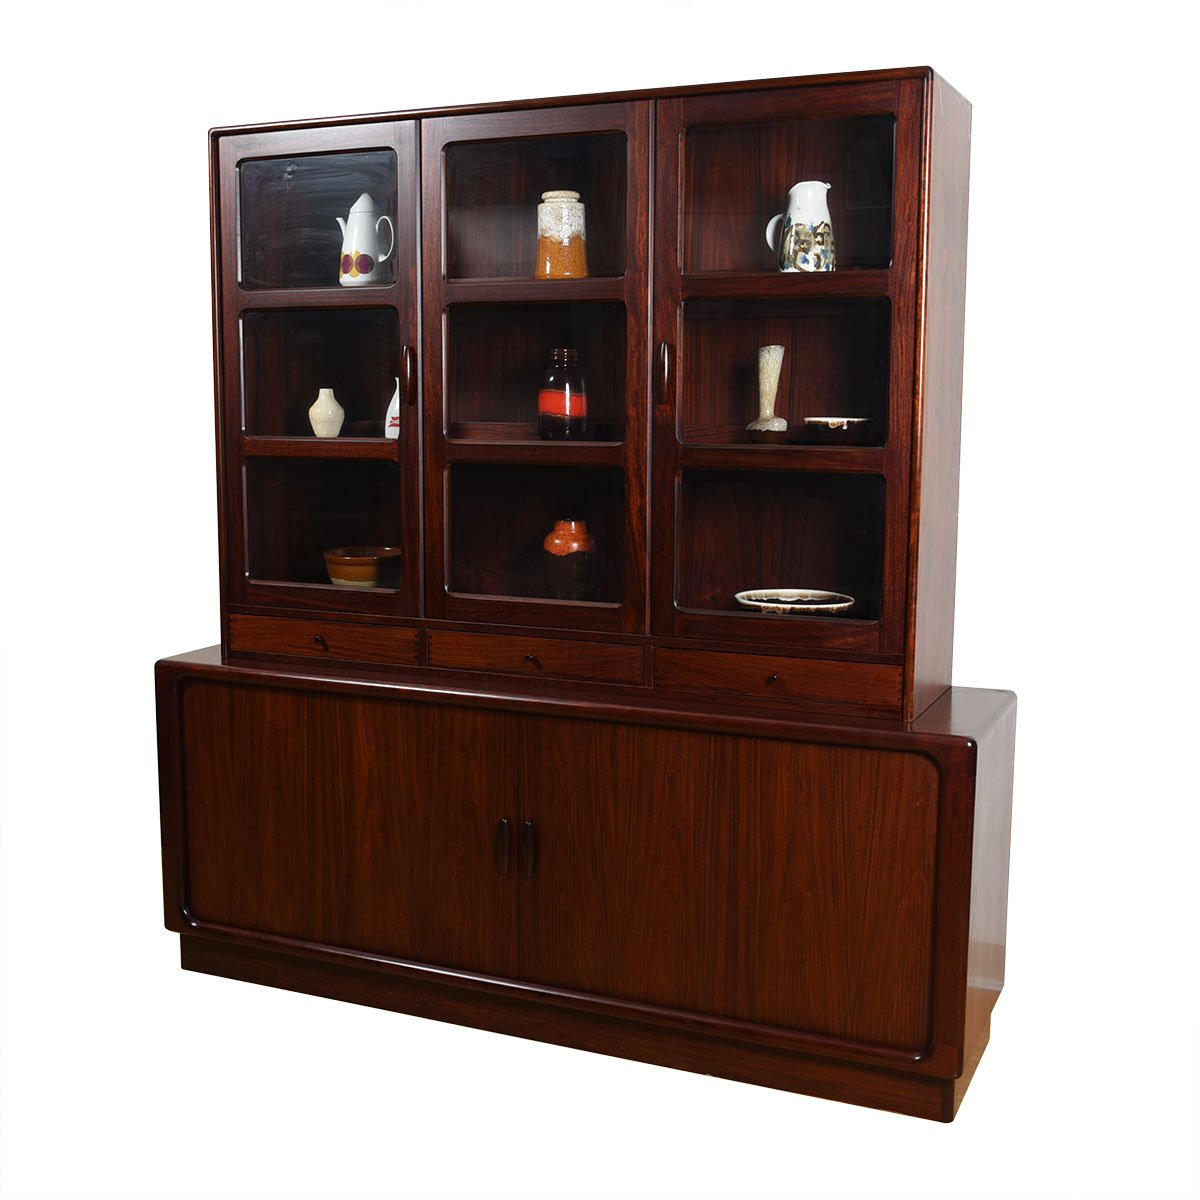 2-Piece Danish Rosewood Display / Tambour Door Storage Credenza